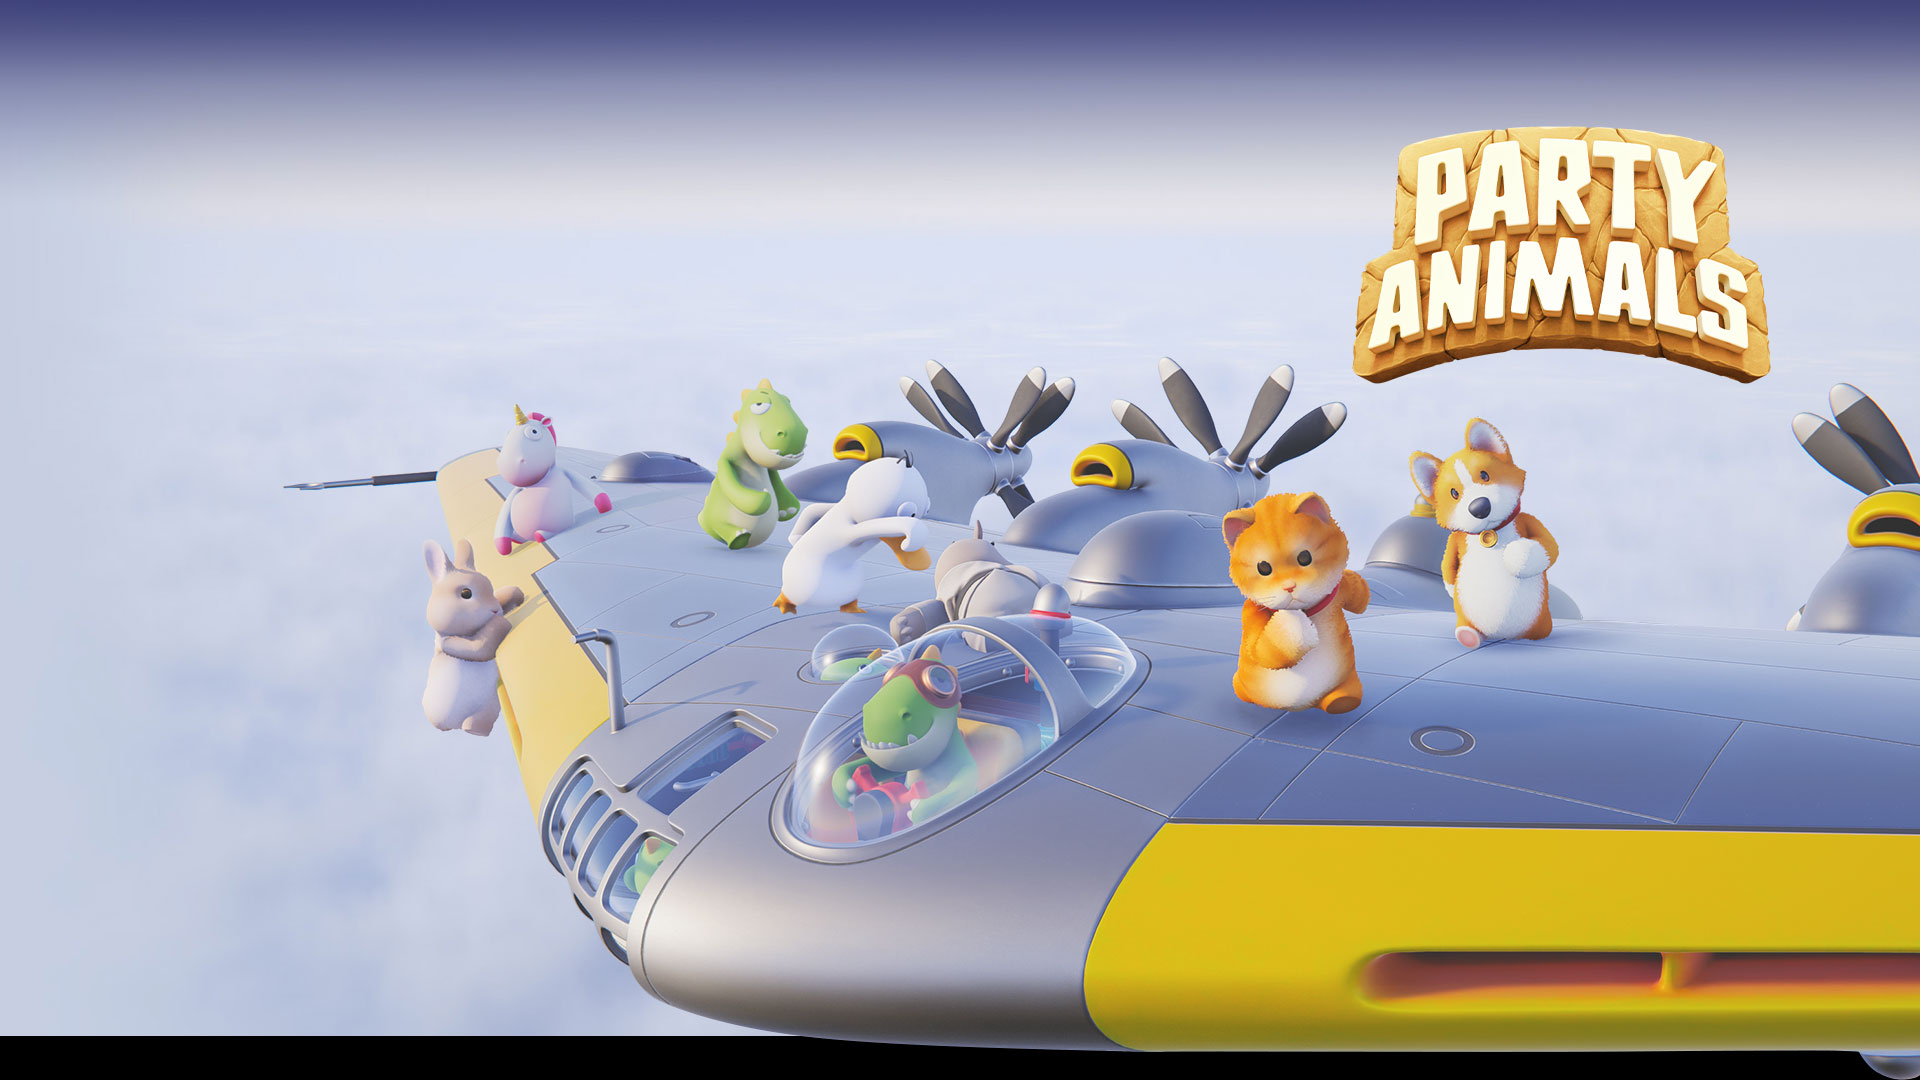 Key art from the game Party Animals.